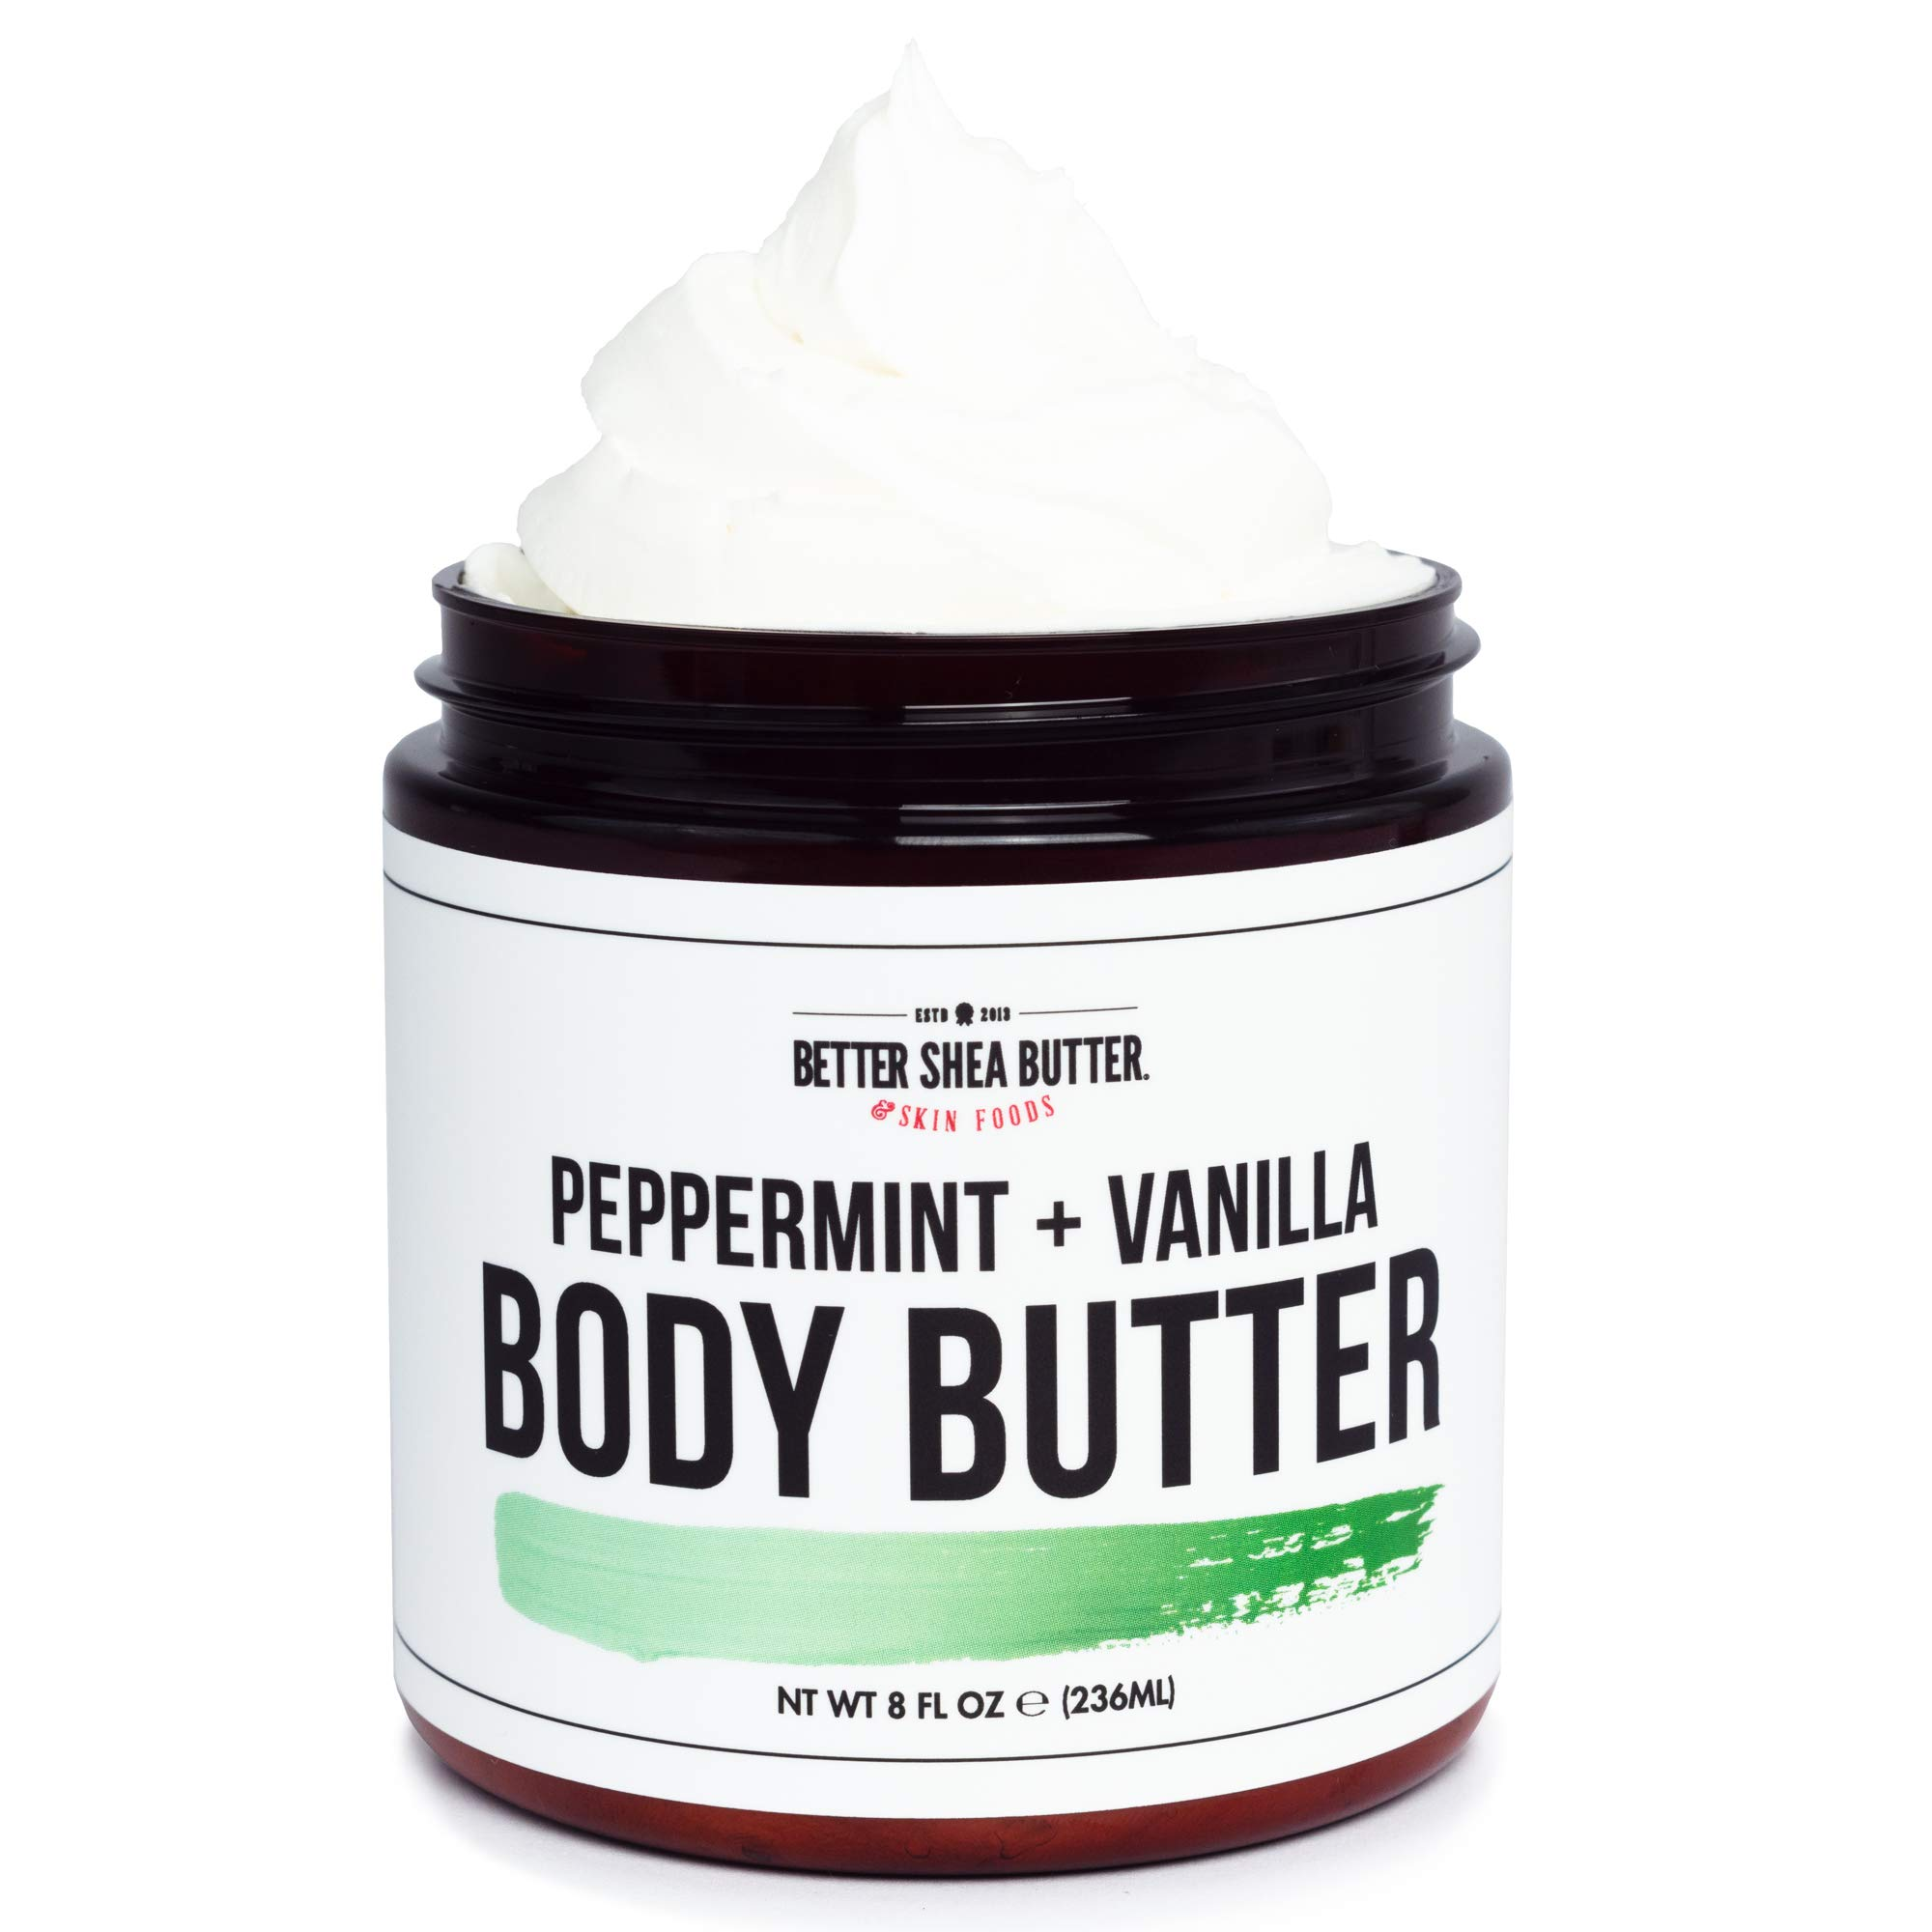 Whipped Body Butter for Dry Skin - PEPPERMINT & VANILLA - Intense 24-Hour Hydrating Cream, Loaded with Shea Butter and Scented with Pure Essential Oils - Paraben Free, Non Greasy - 8 oz by Better Shea Butter